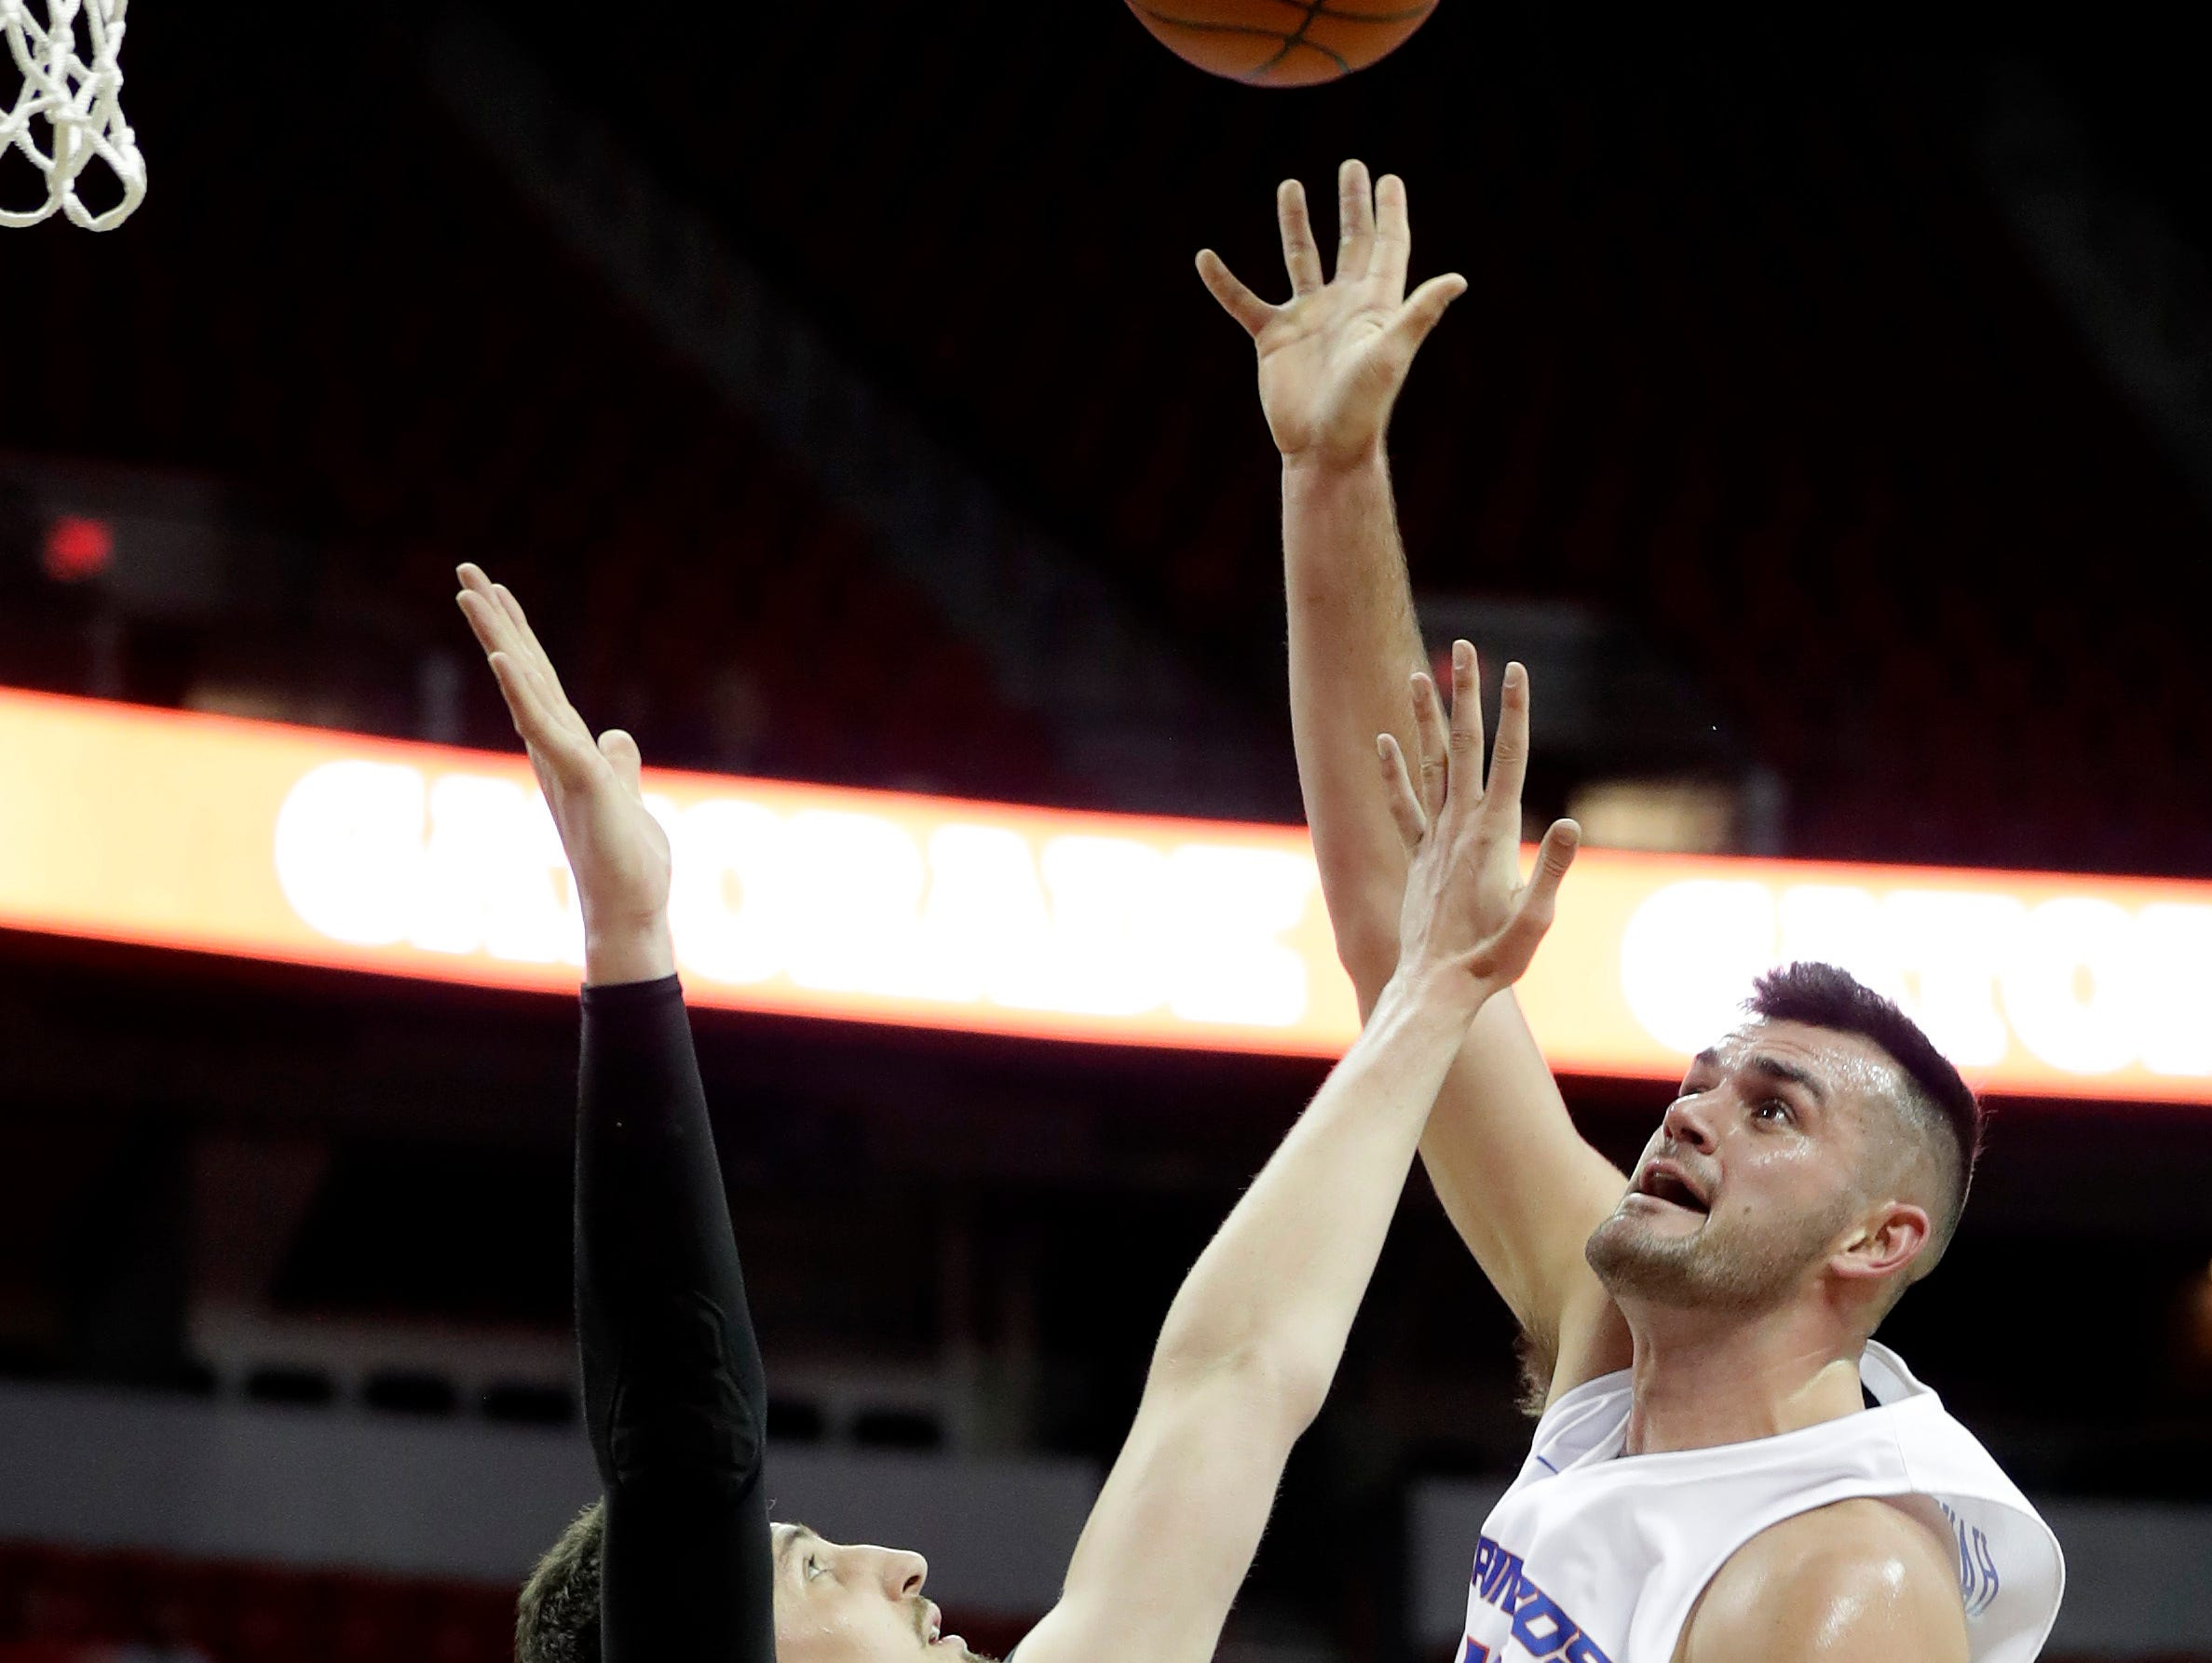 Boise State's Zach Haney, right, shoots over Colorado State's Nico Carvacho (32) during the first half of an NCAA college basketball game in the Mountain West Conference tournament, Wednesday, March 13, 2019, in Las Vegas.